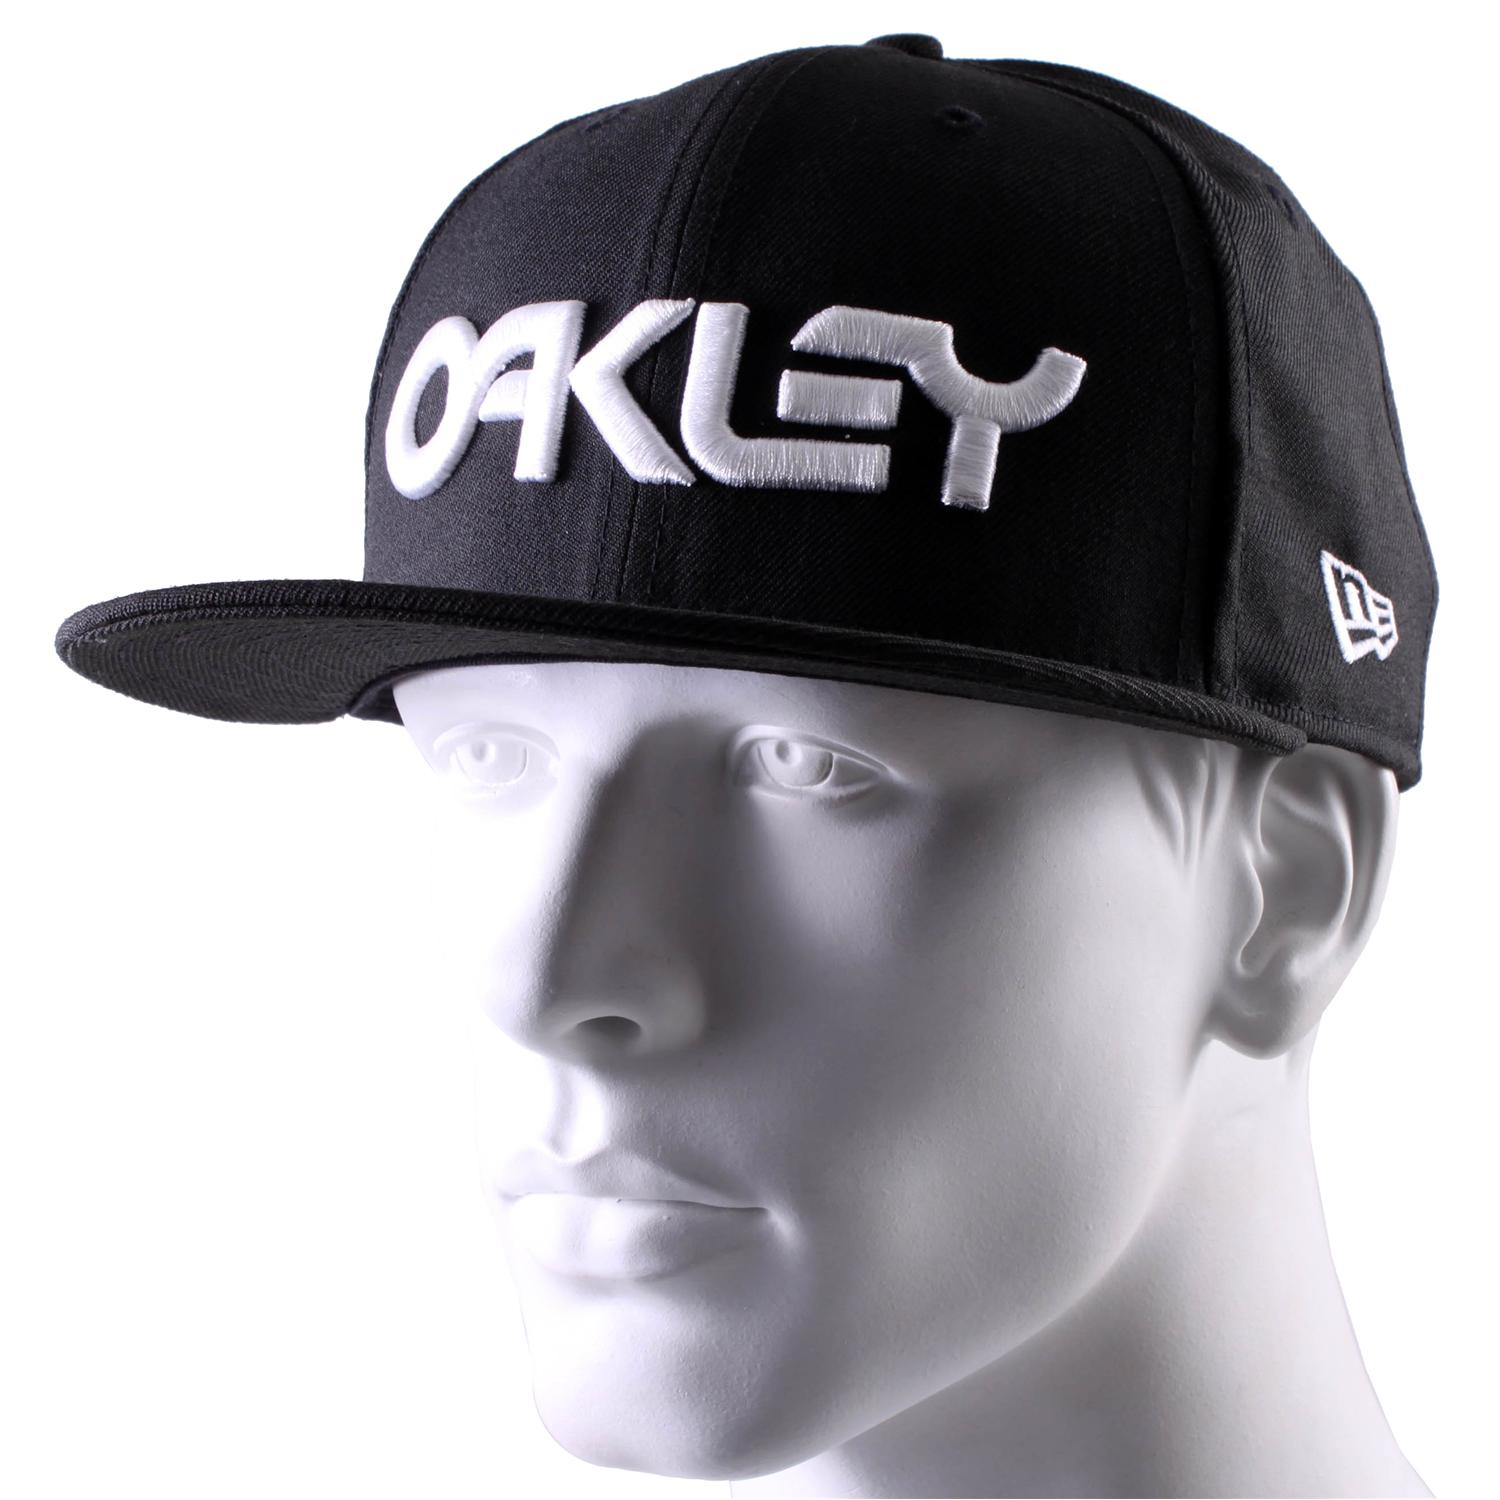 9c7653ccc00 Oakley New Era Hats « Heritage Malta